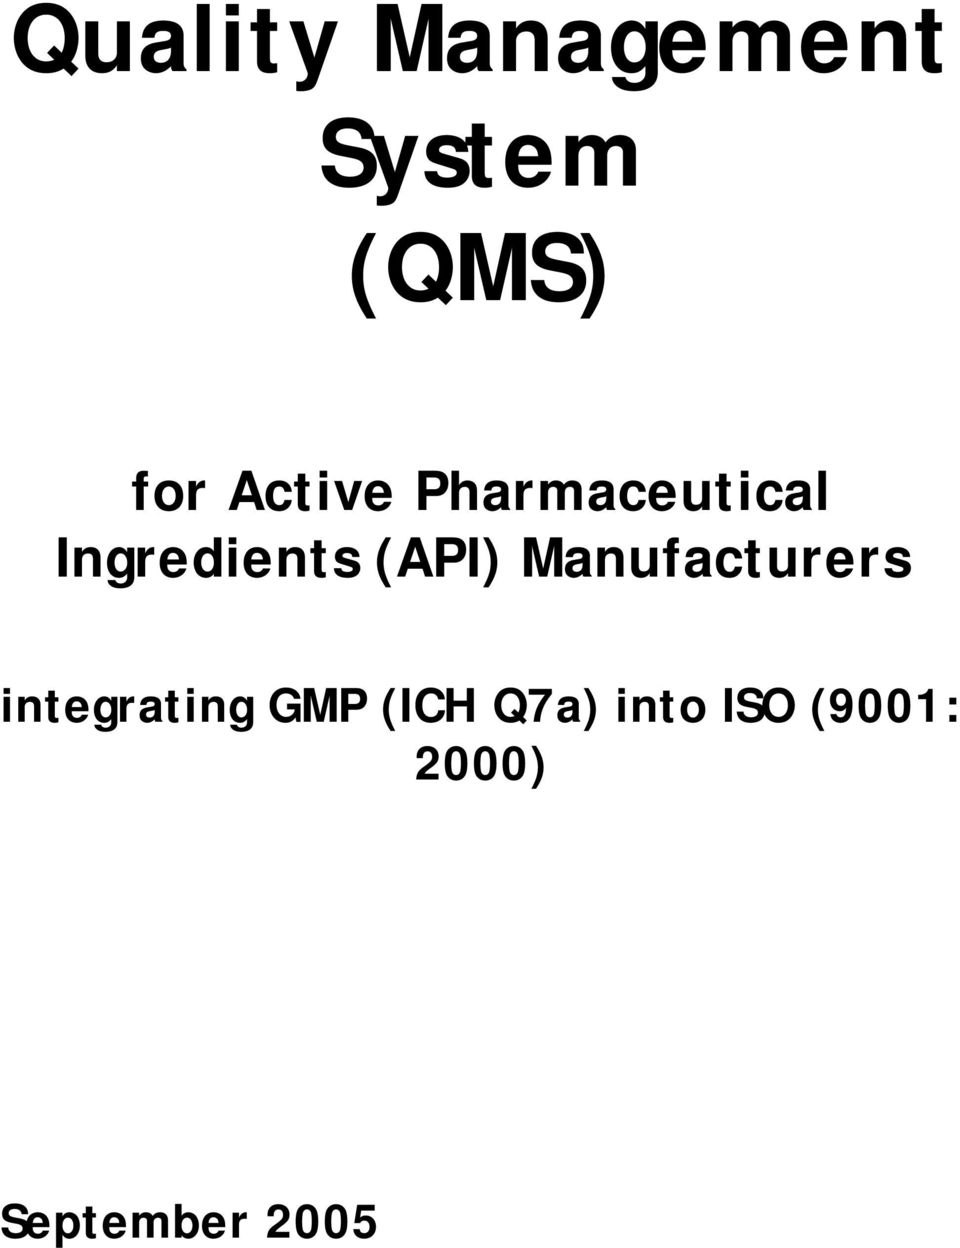 Quality Management System (QMS) for Active Pharmaceutical